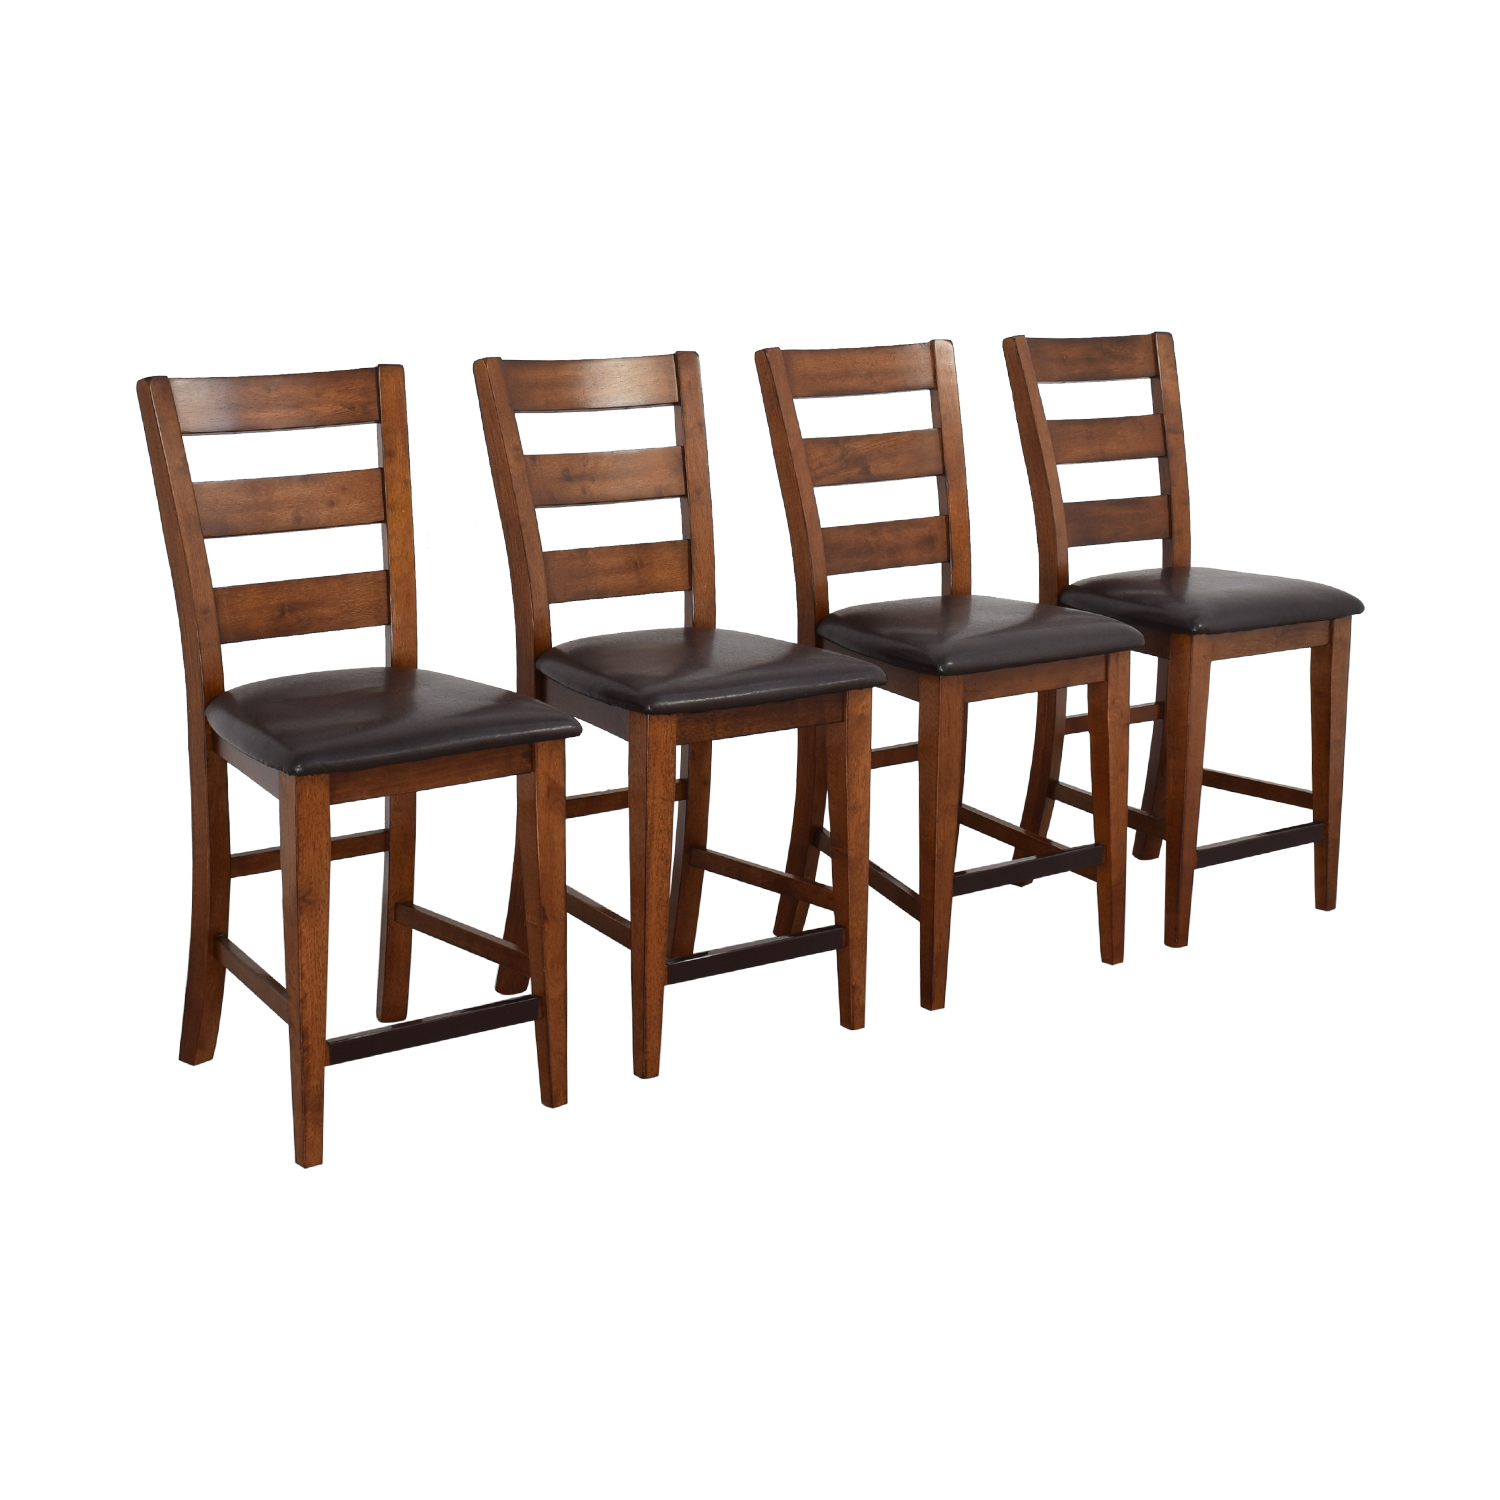 shop American Signature Ladder Back Dining Chairs American Signature